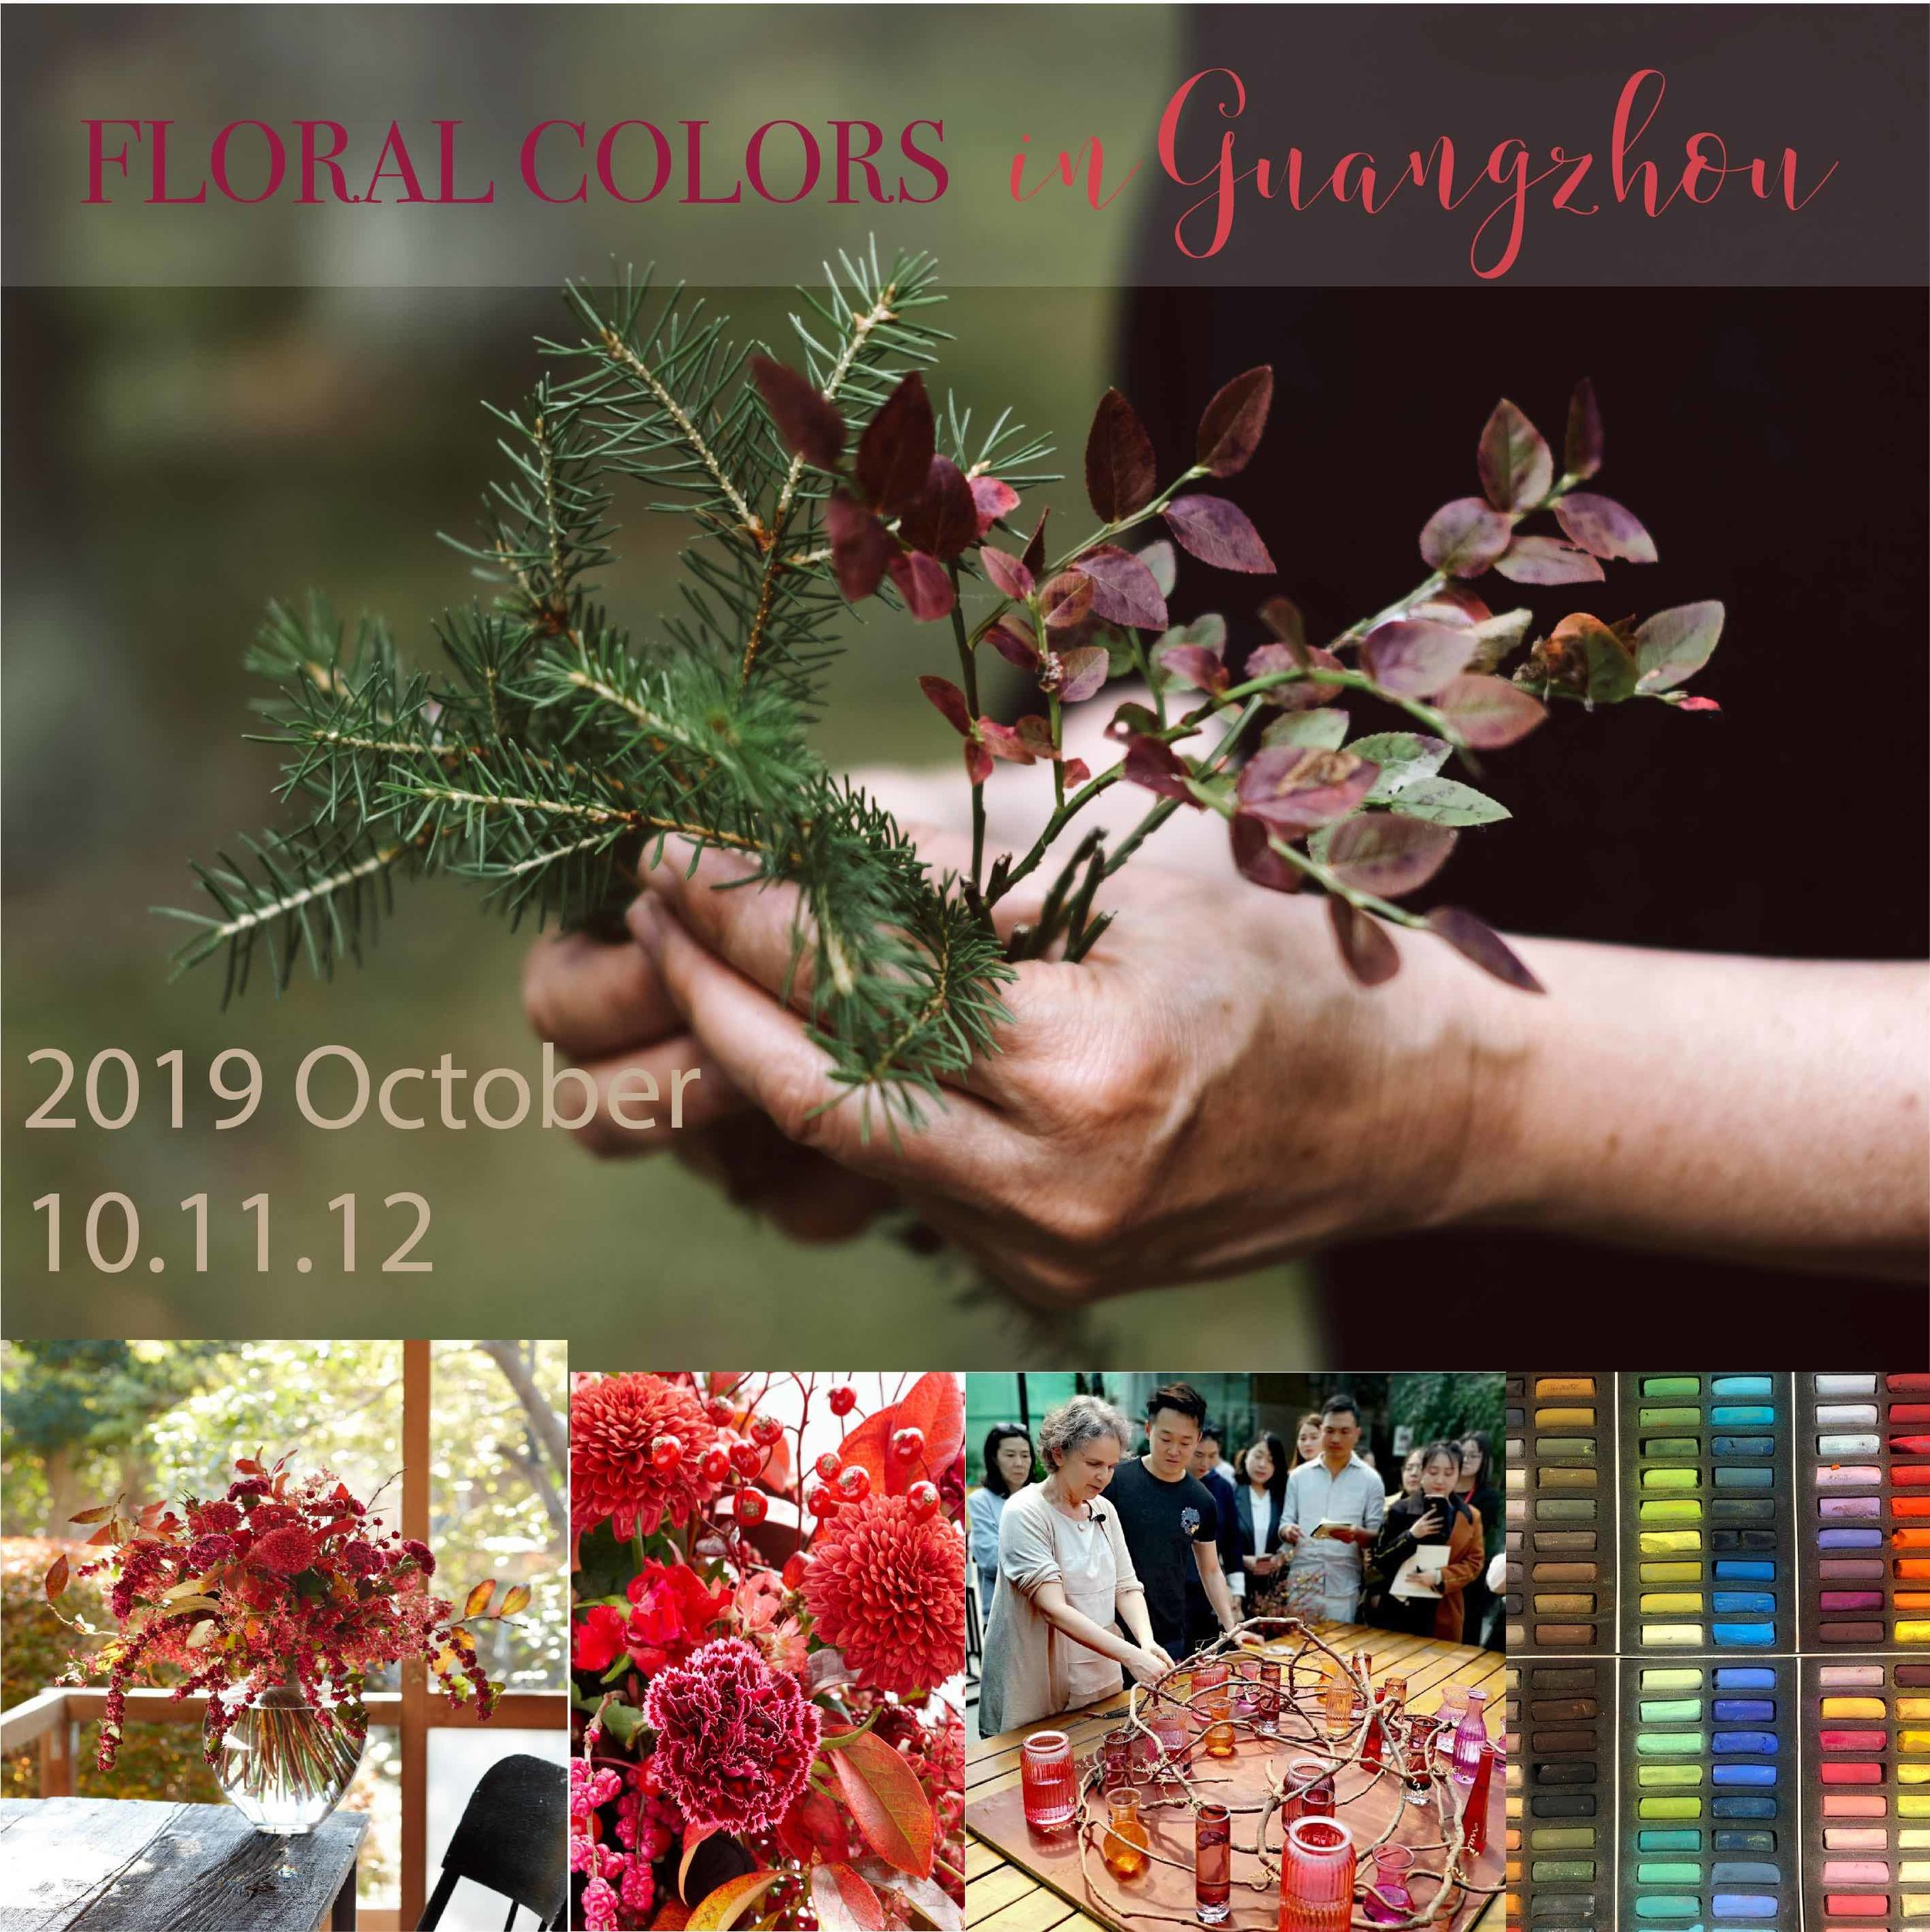 12th of October in Guangzhou